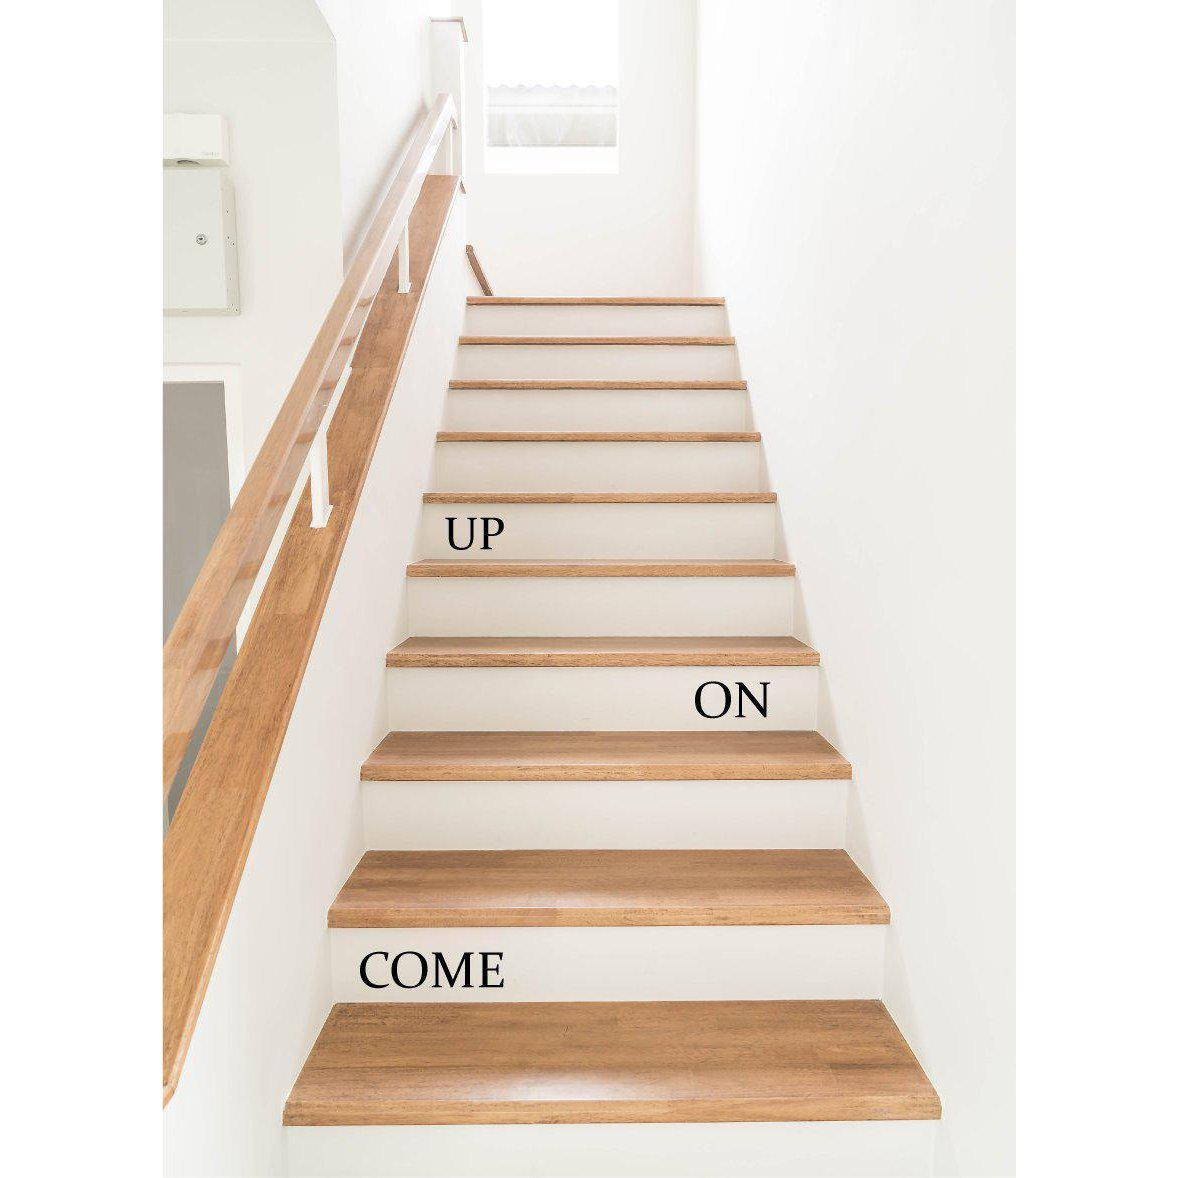 Stair Wall Stickers Stairs Wall Decals Quotes Come On Up Home Decor Vinyl Stickers For Stairs Art For Home Office Stair Riser Decals